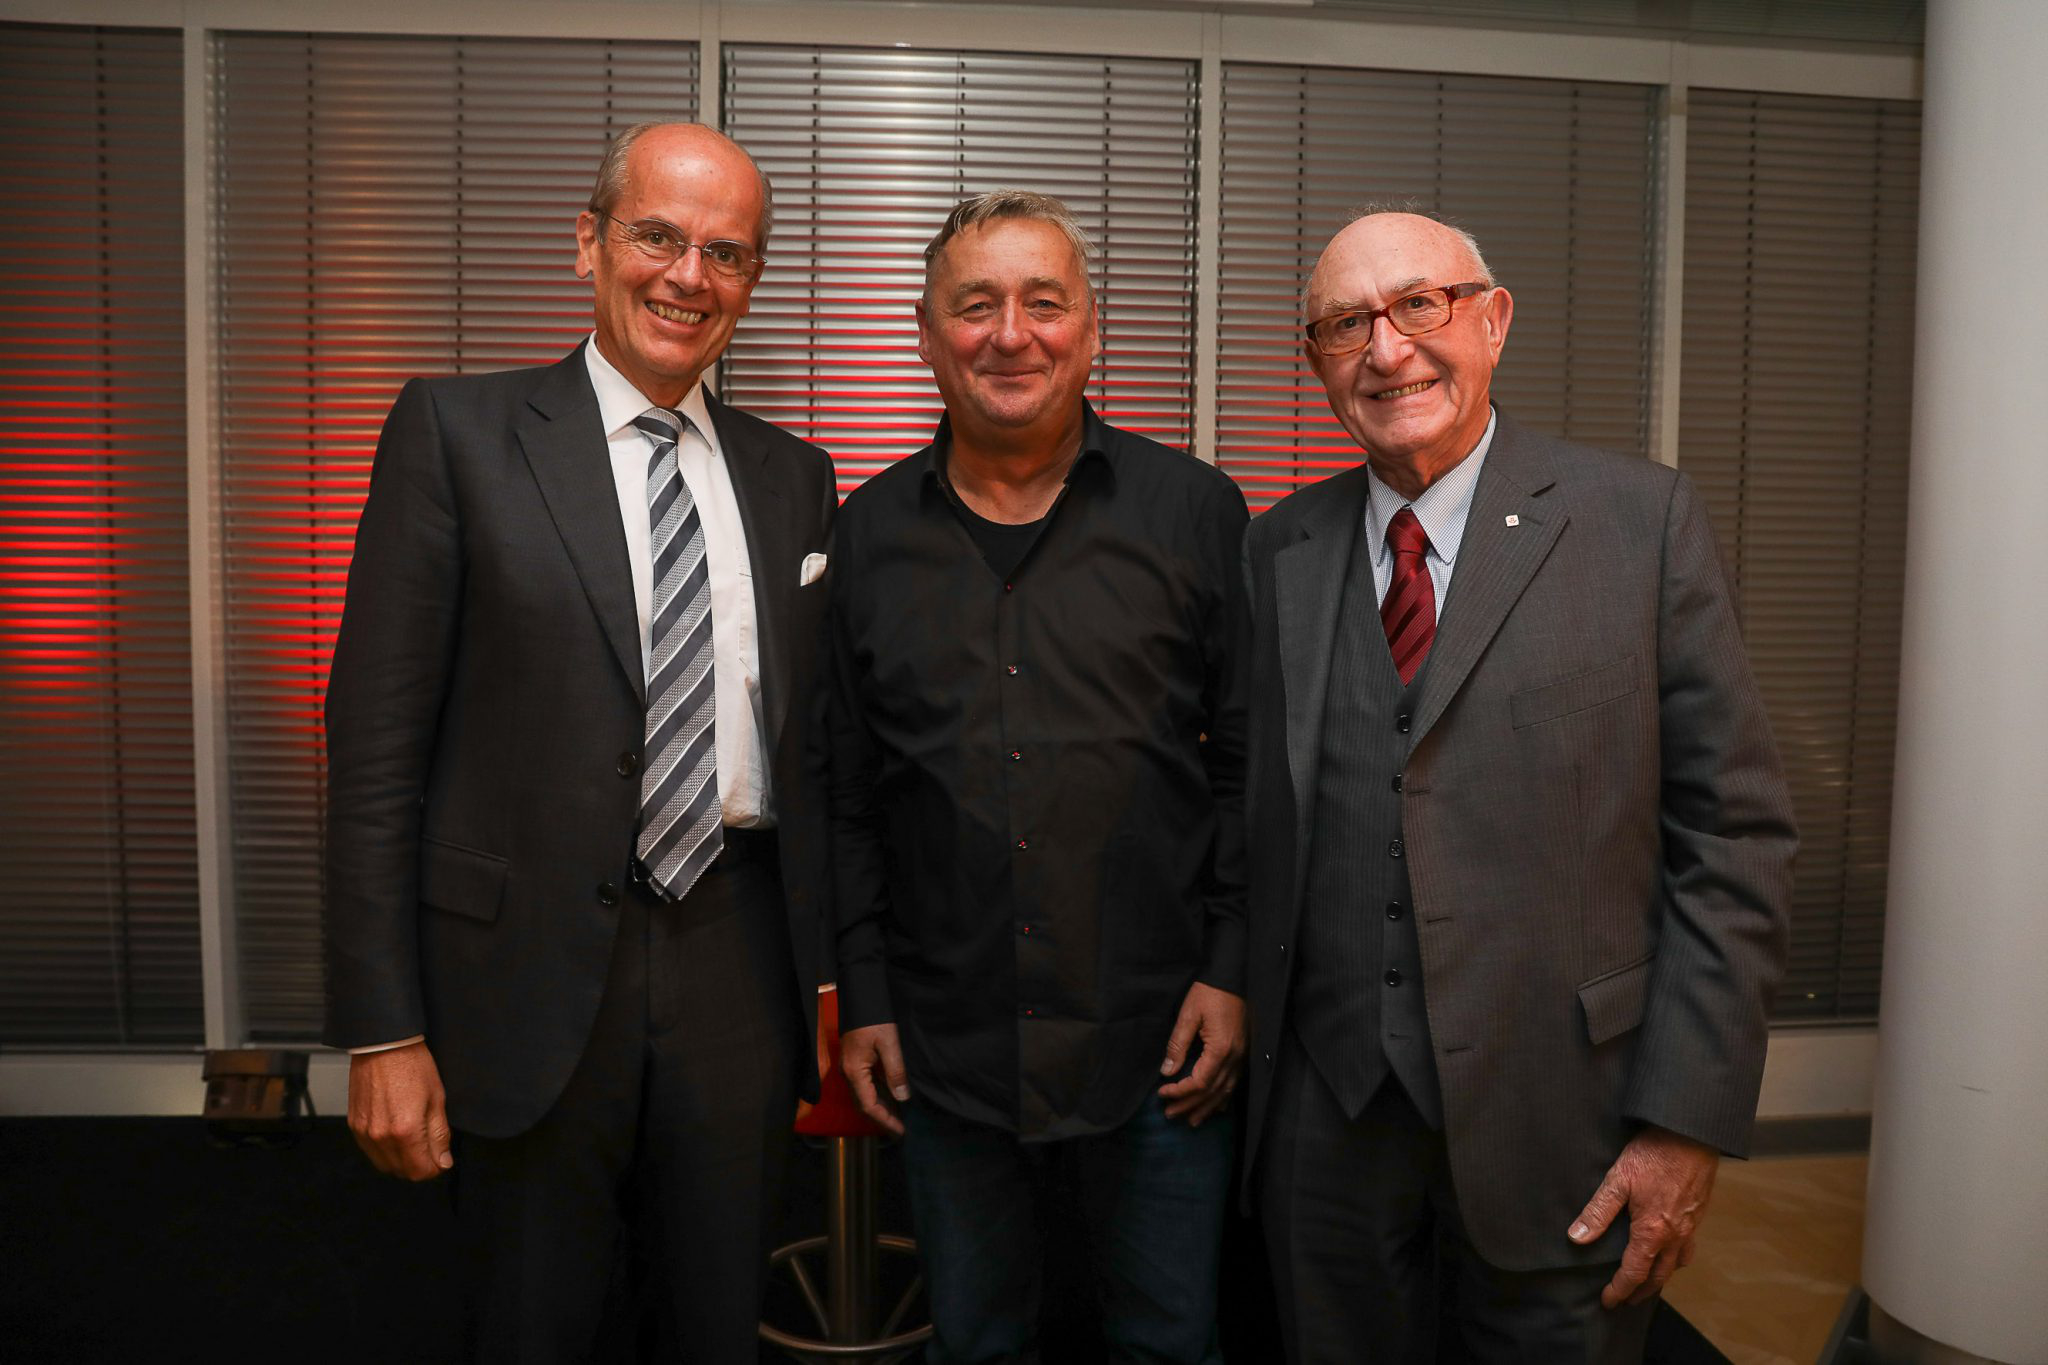 The picture shows Günter Geyer (right), CEO of Wiener Städtische Versicherungsverein and host, with the artist of the evening Andreas Vitásek (centre) and Wolfgang Leitner, CEO of Andritz AG. © Wiener Städtische Versicherungsverein/Richard Tanzer